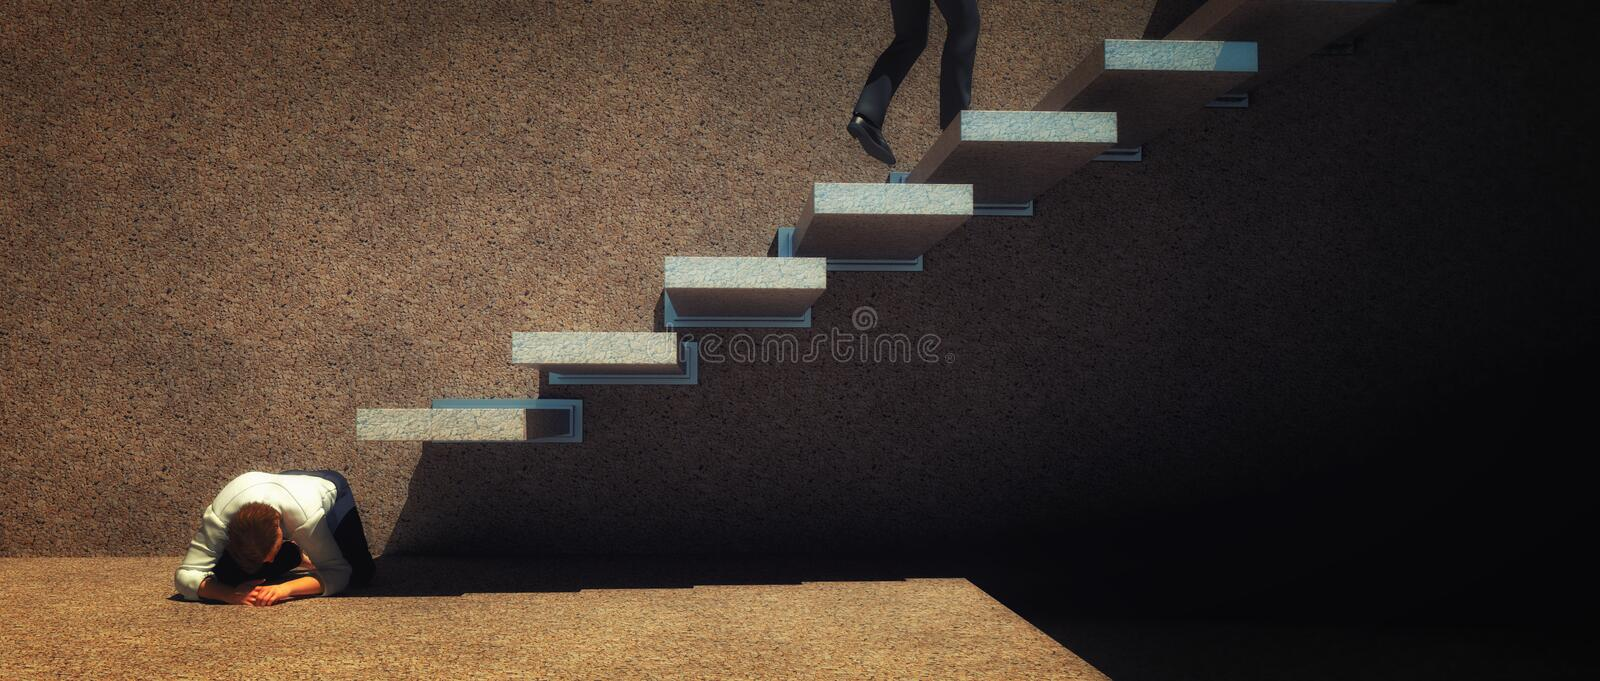 Steppingstone in a stairway vector illustration